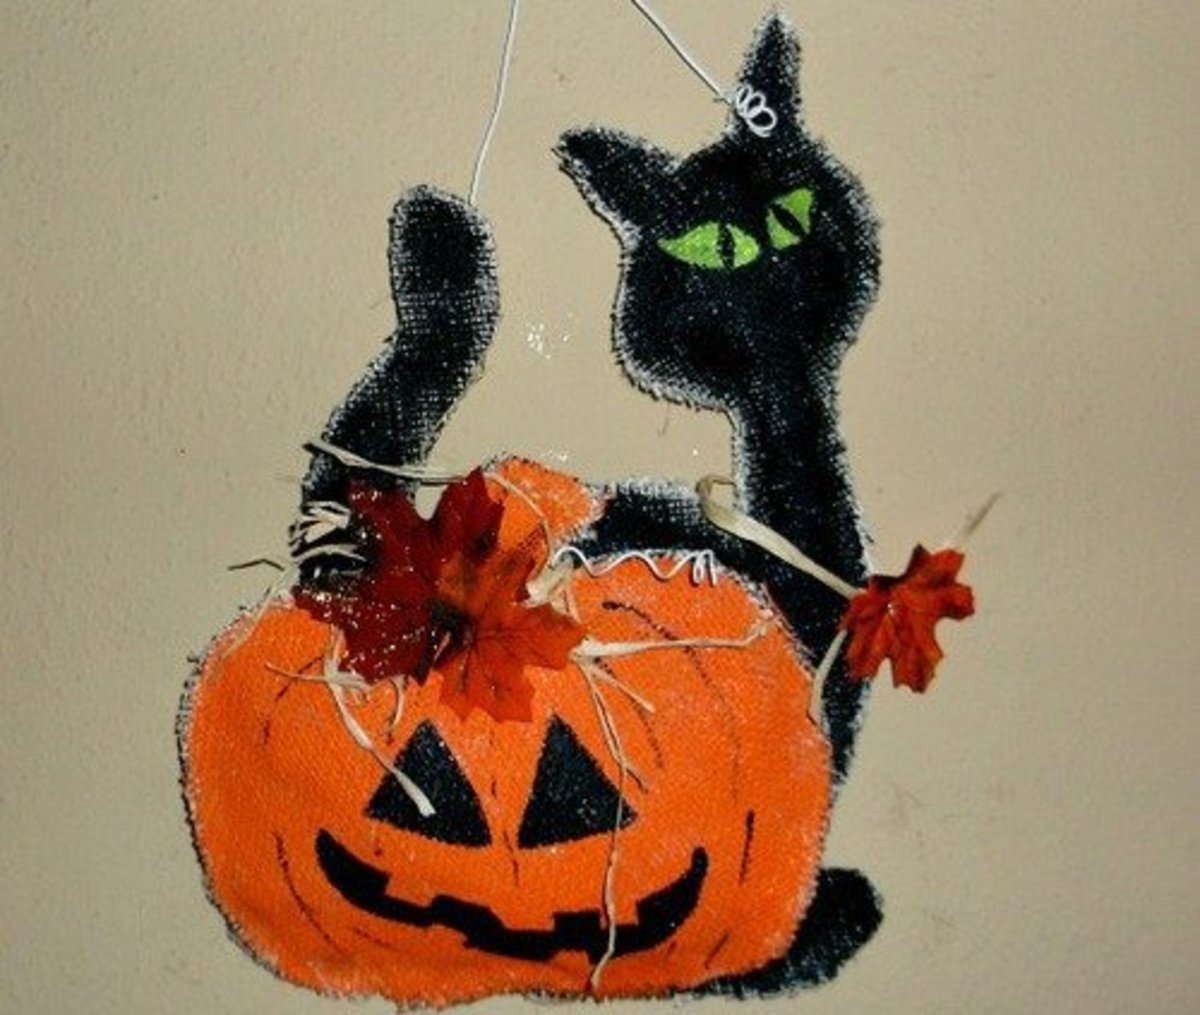 How to Make a Black Cat Door Hanger